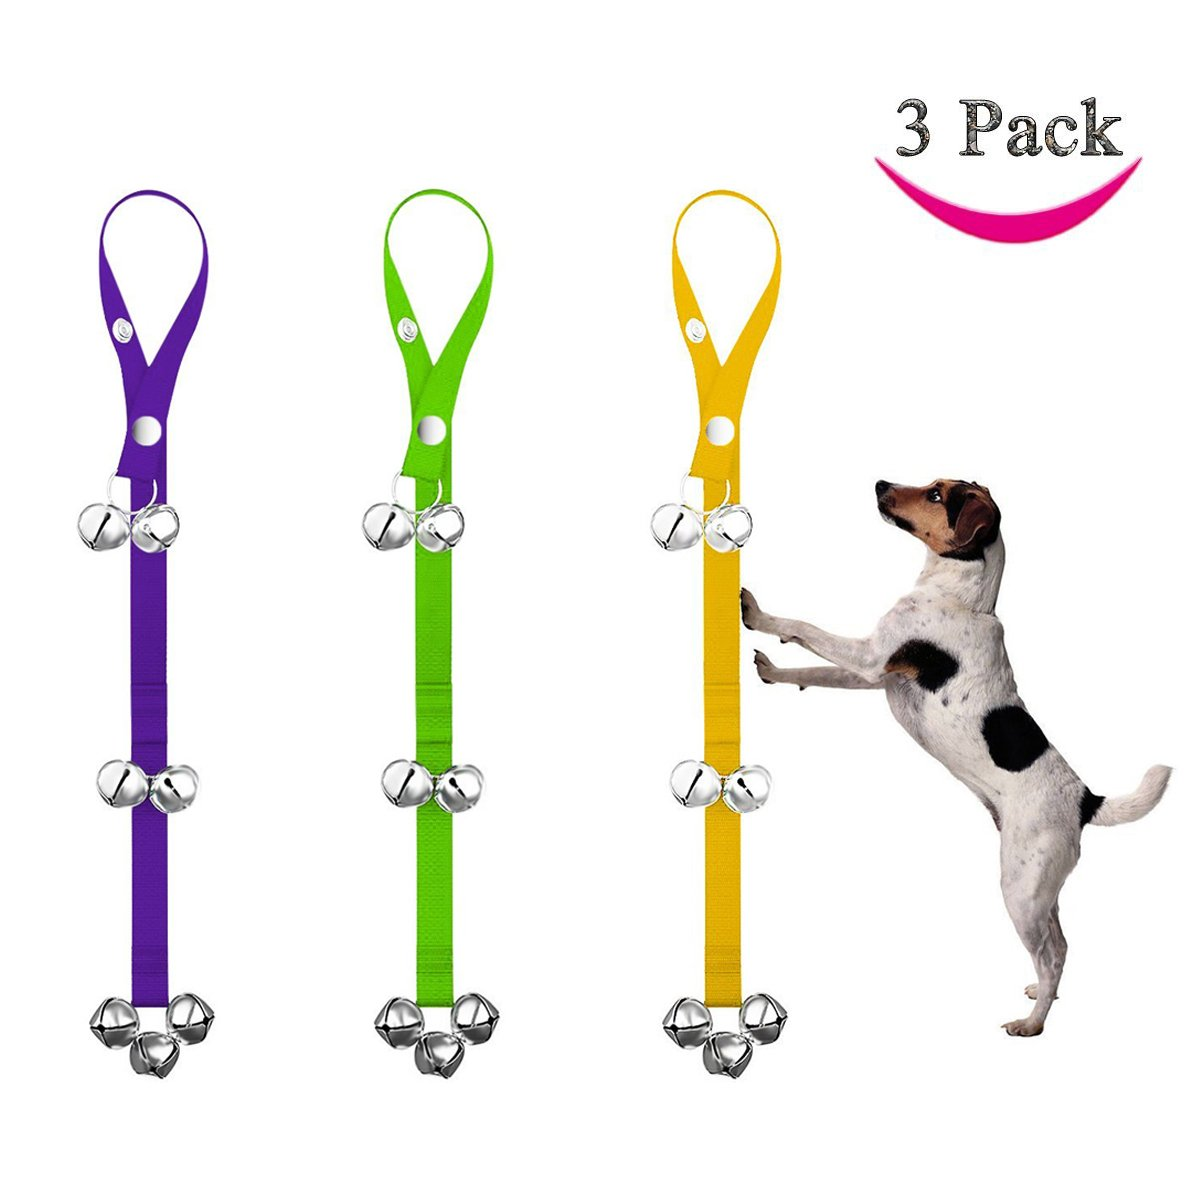 Shichique 3 PACK Potty Doorbells Housetraining Dog Doorbells Tinkle Bells for House Training, Dog Bell with 7 Bells 3 Color